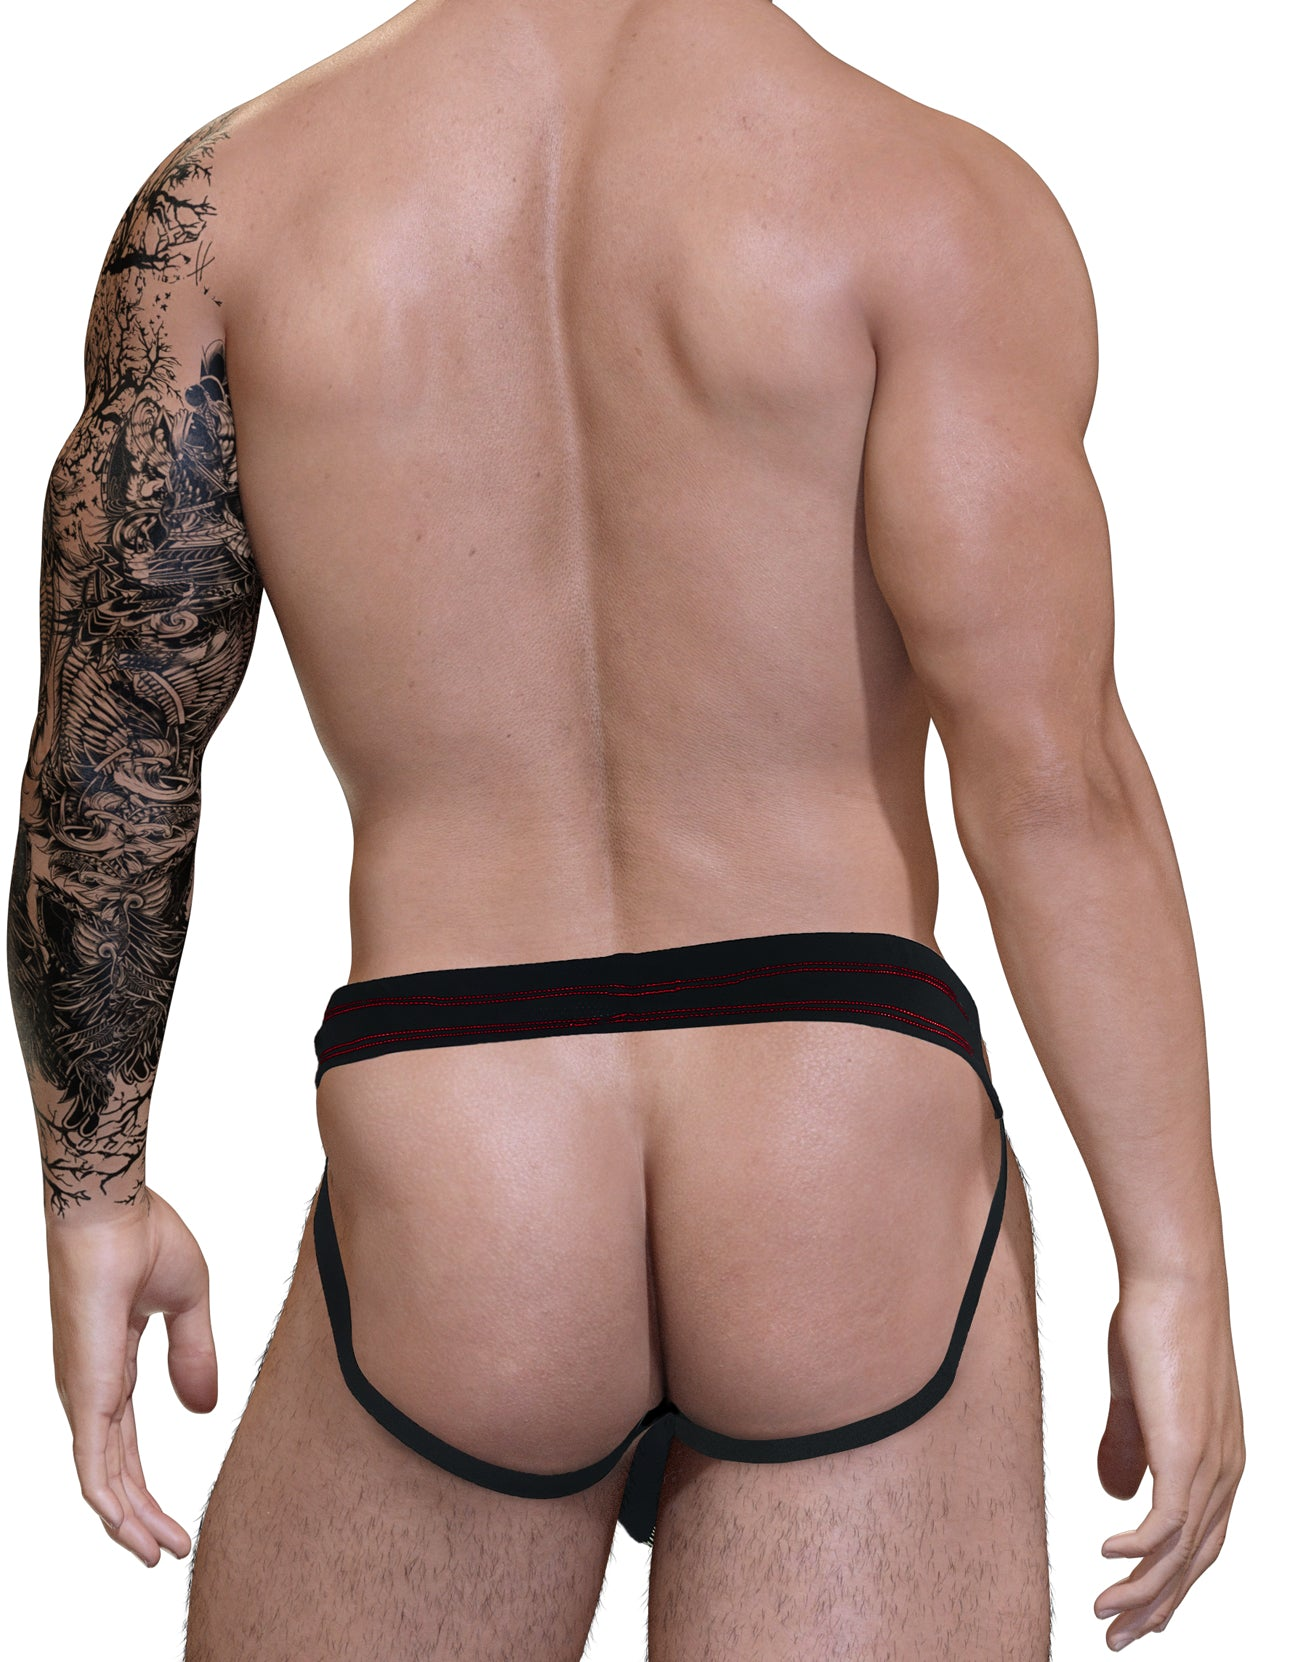 Stitch Big Boy Pouch Jock Strap - Red - Big Penis Underwear, WildmanT - WildmanT